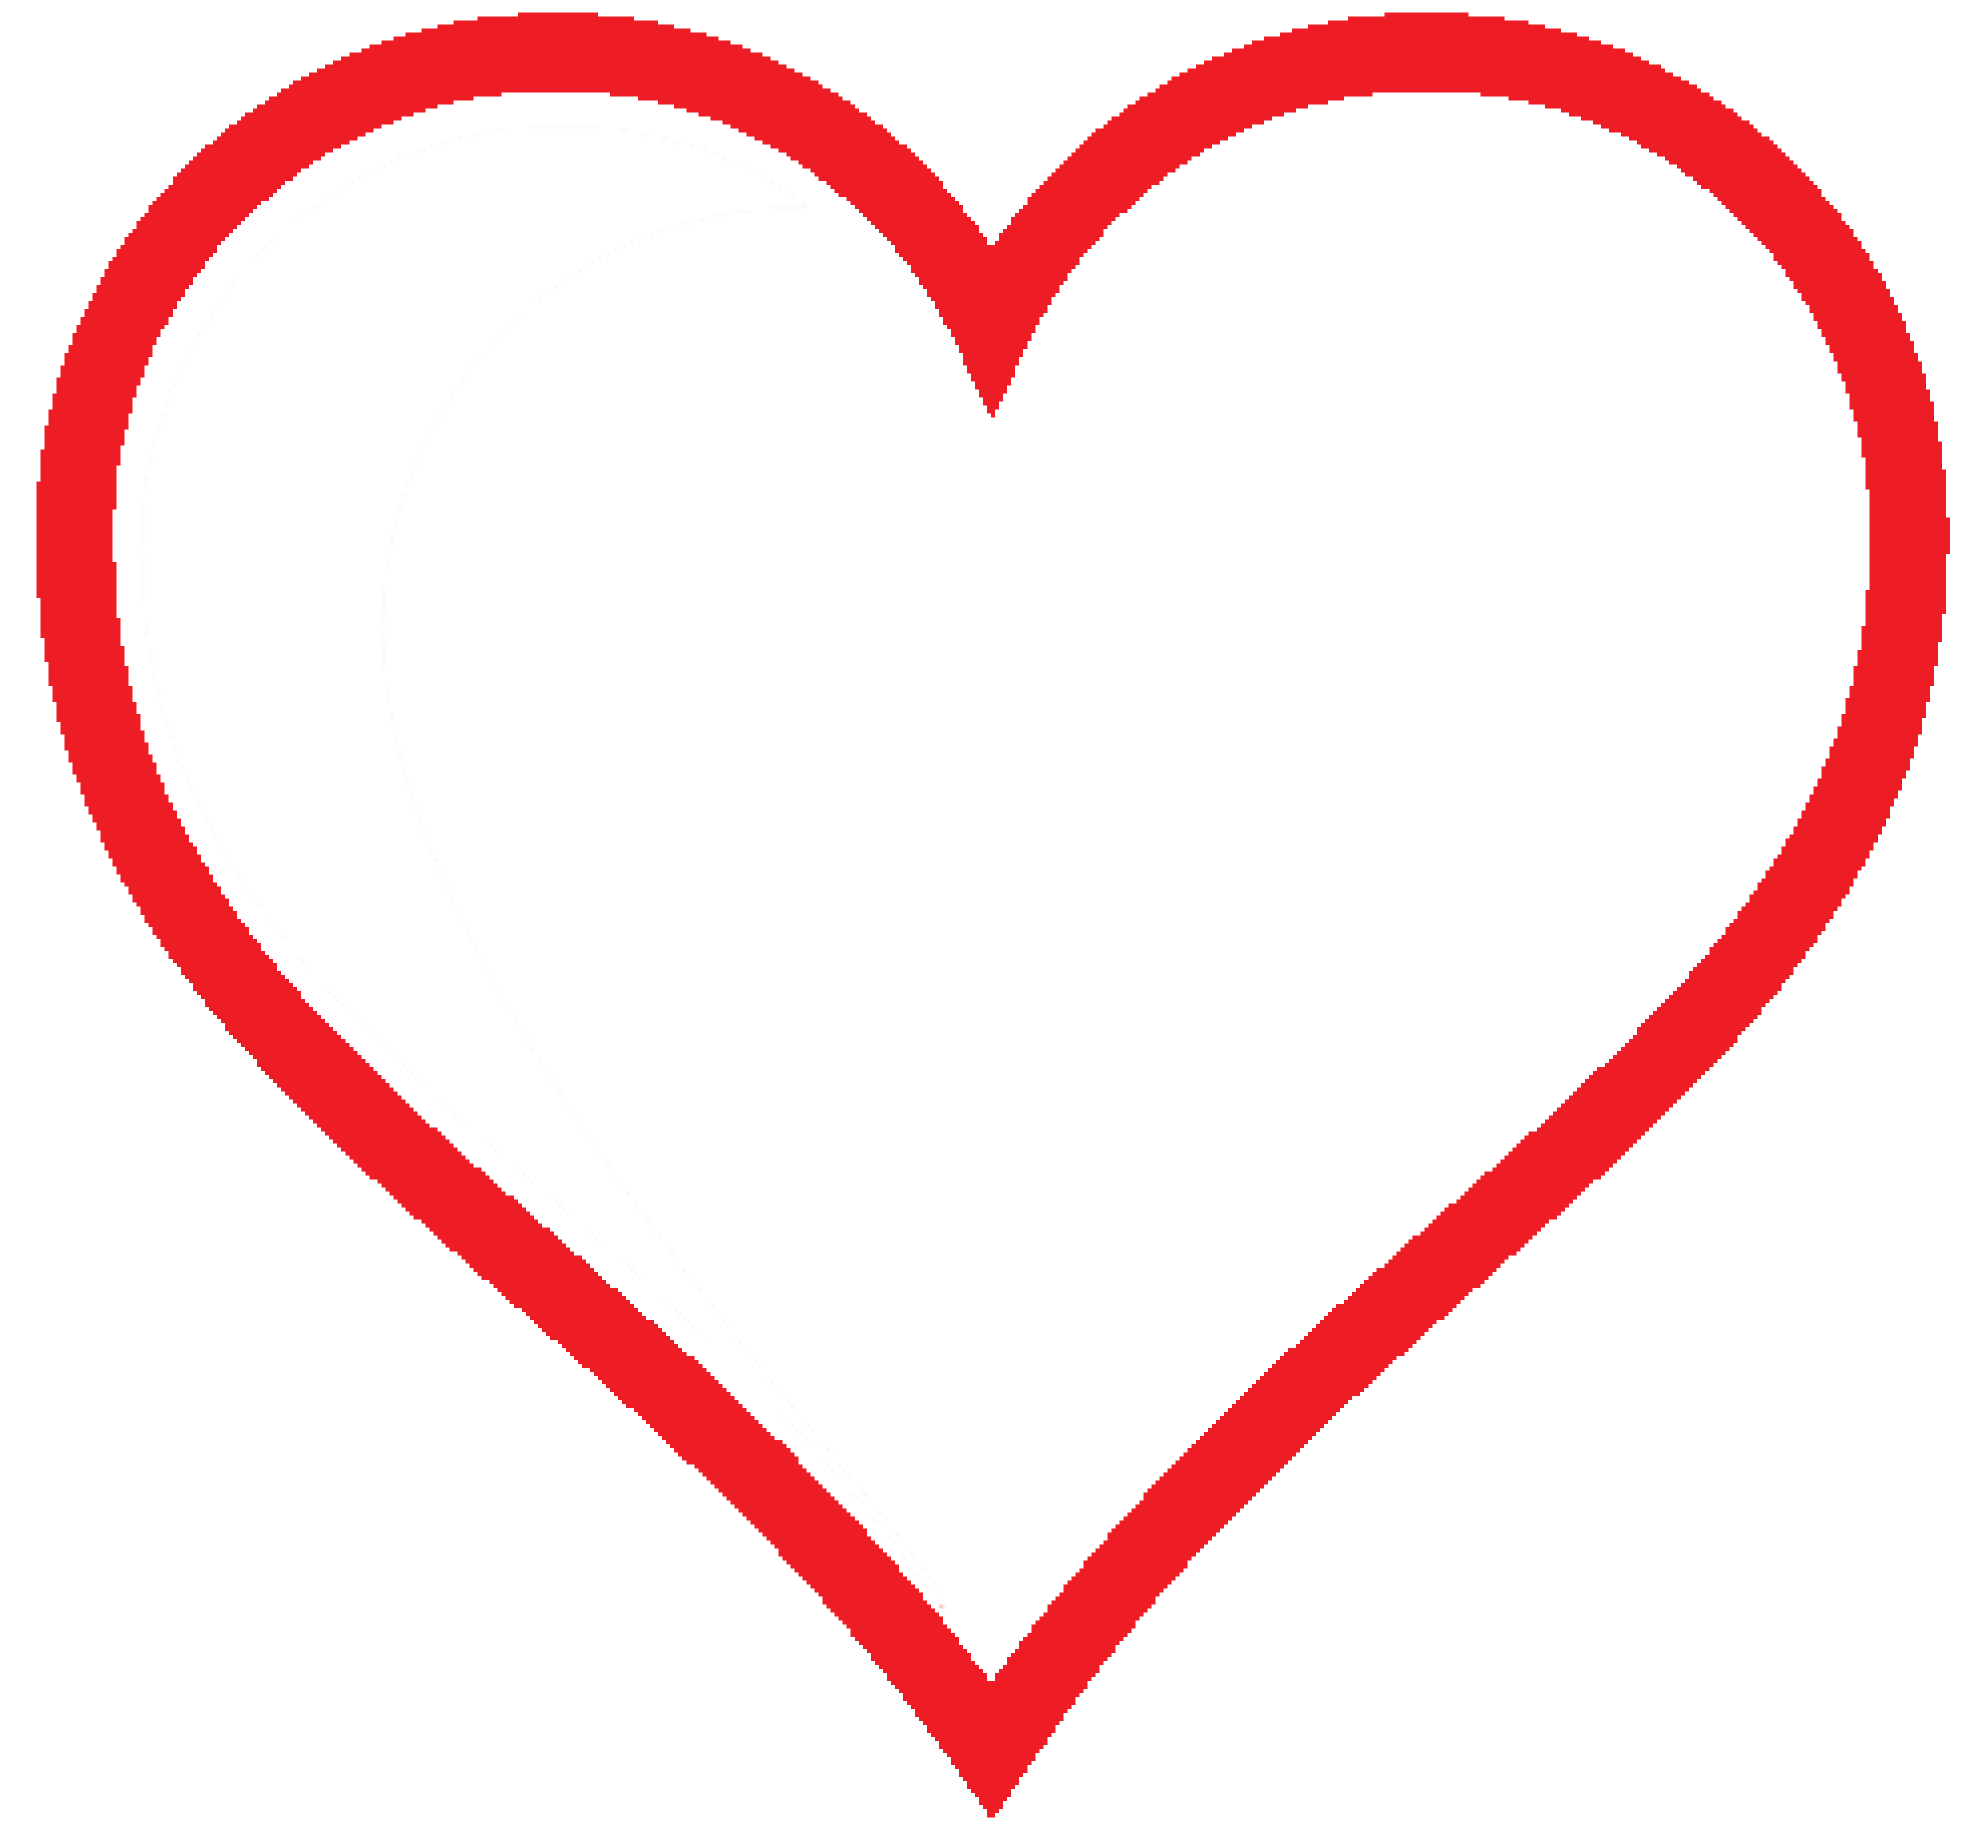 Free clipart valentine heart clip freeuse library Simple Heart Clipart at GetDrawings.com | Free for personal use ... clip freeuse library